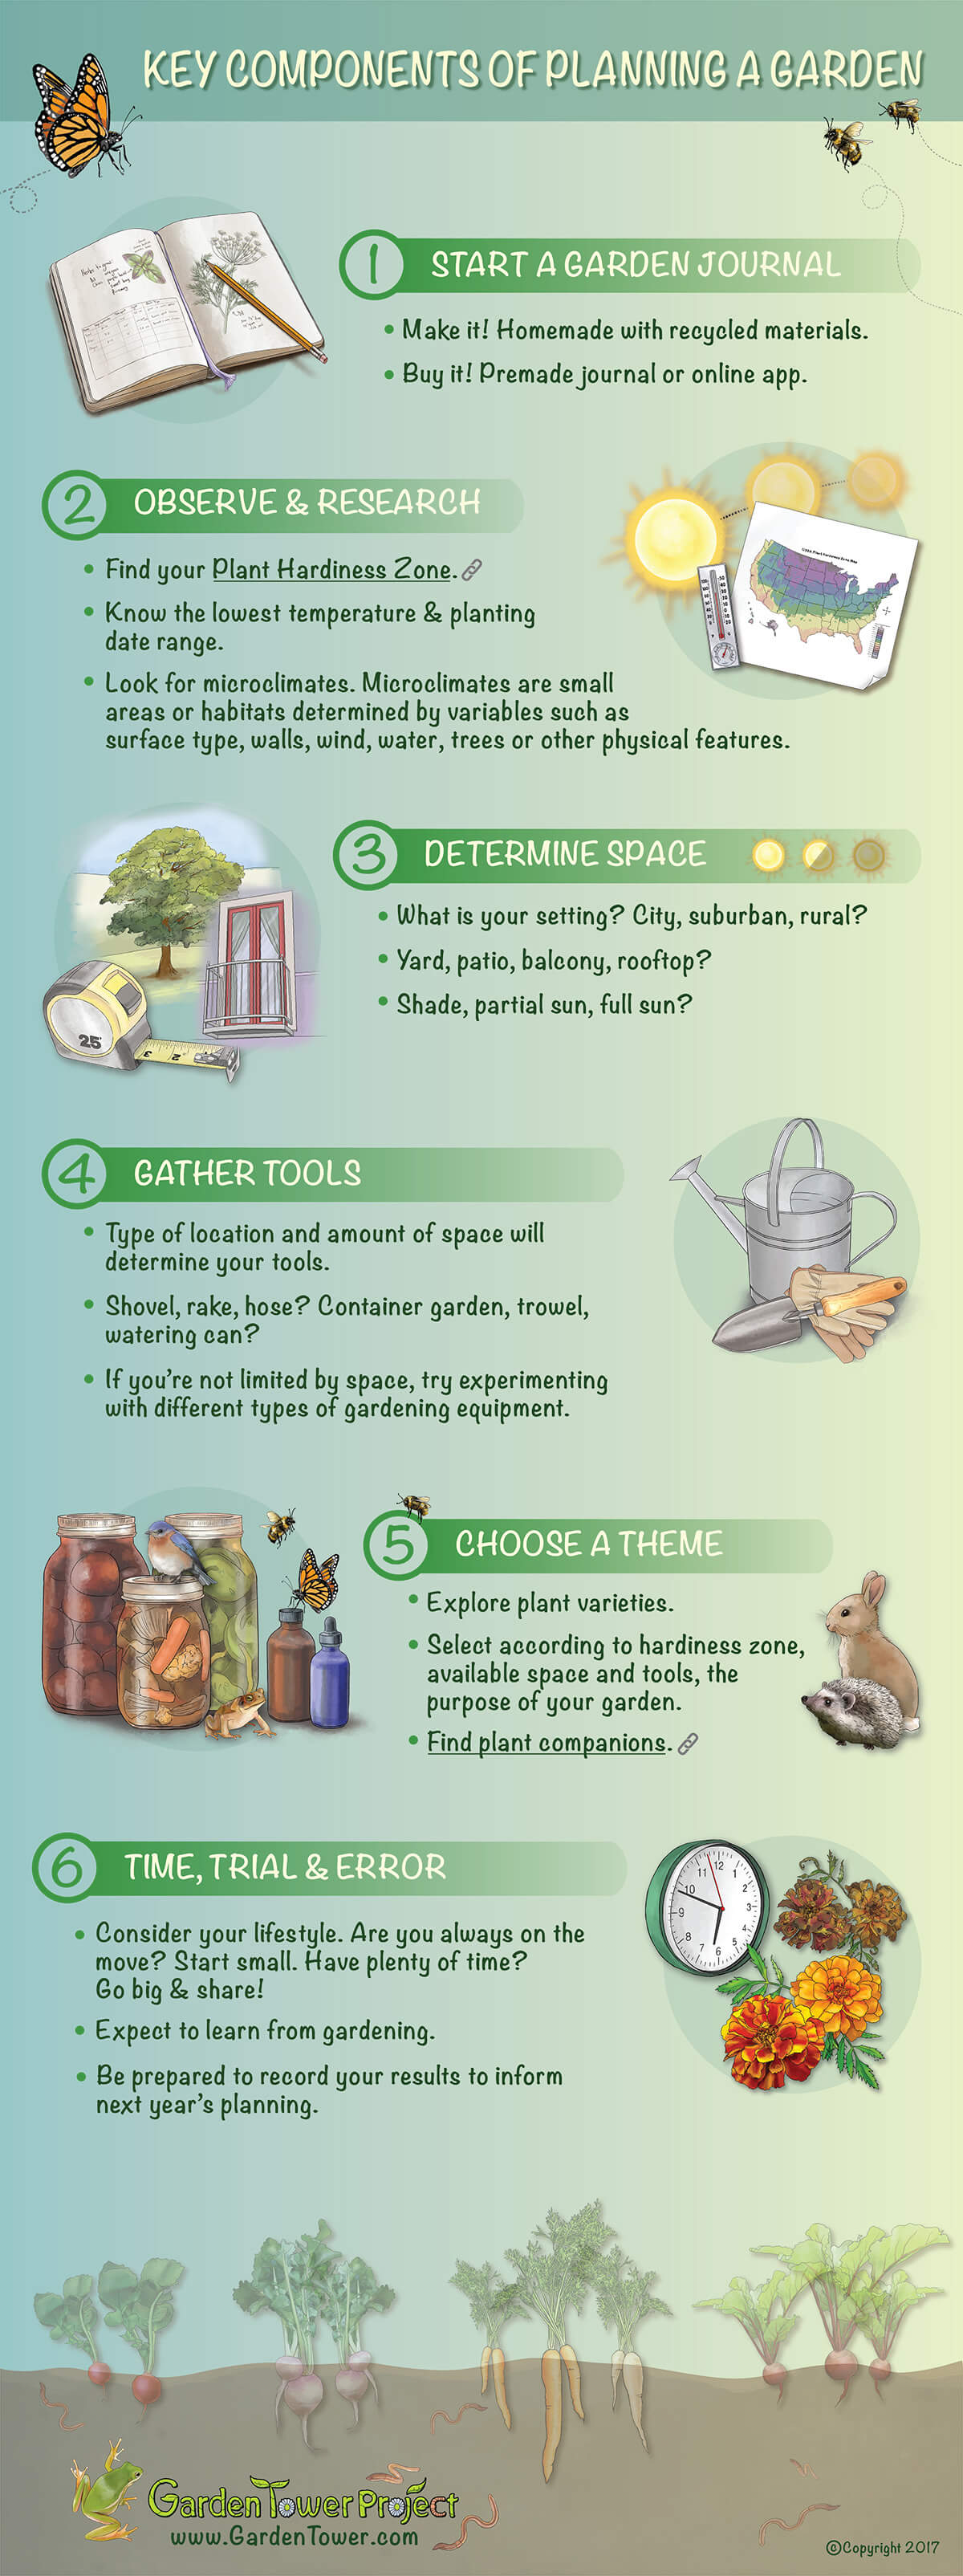 Planning a Garden Infographic Guide and Diagram